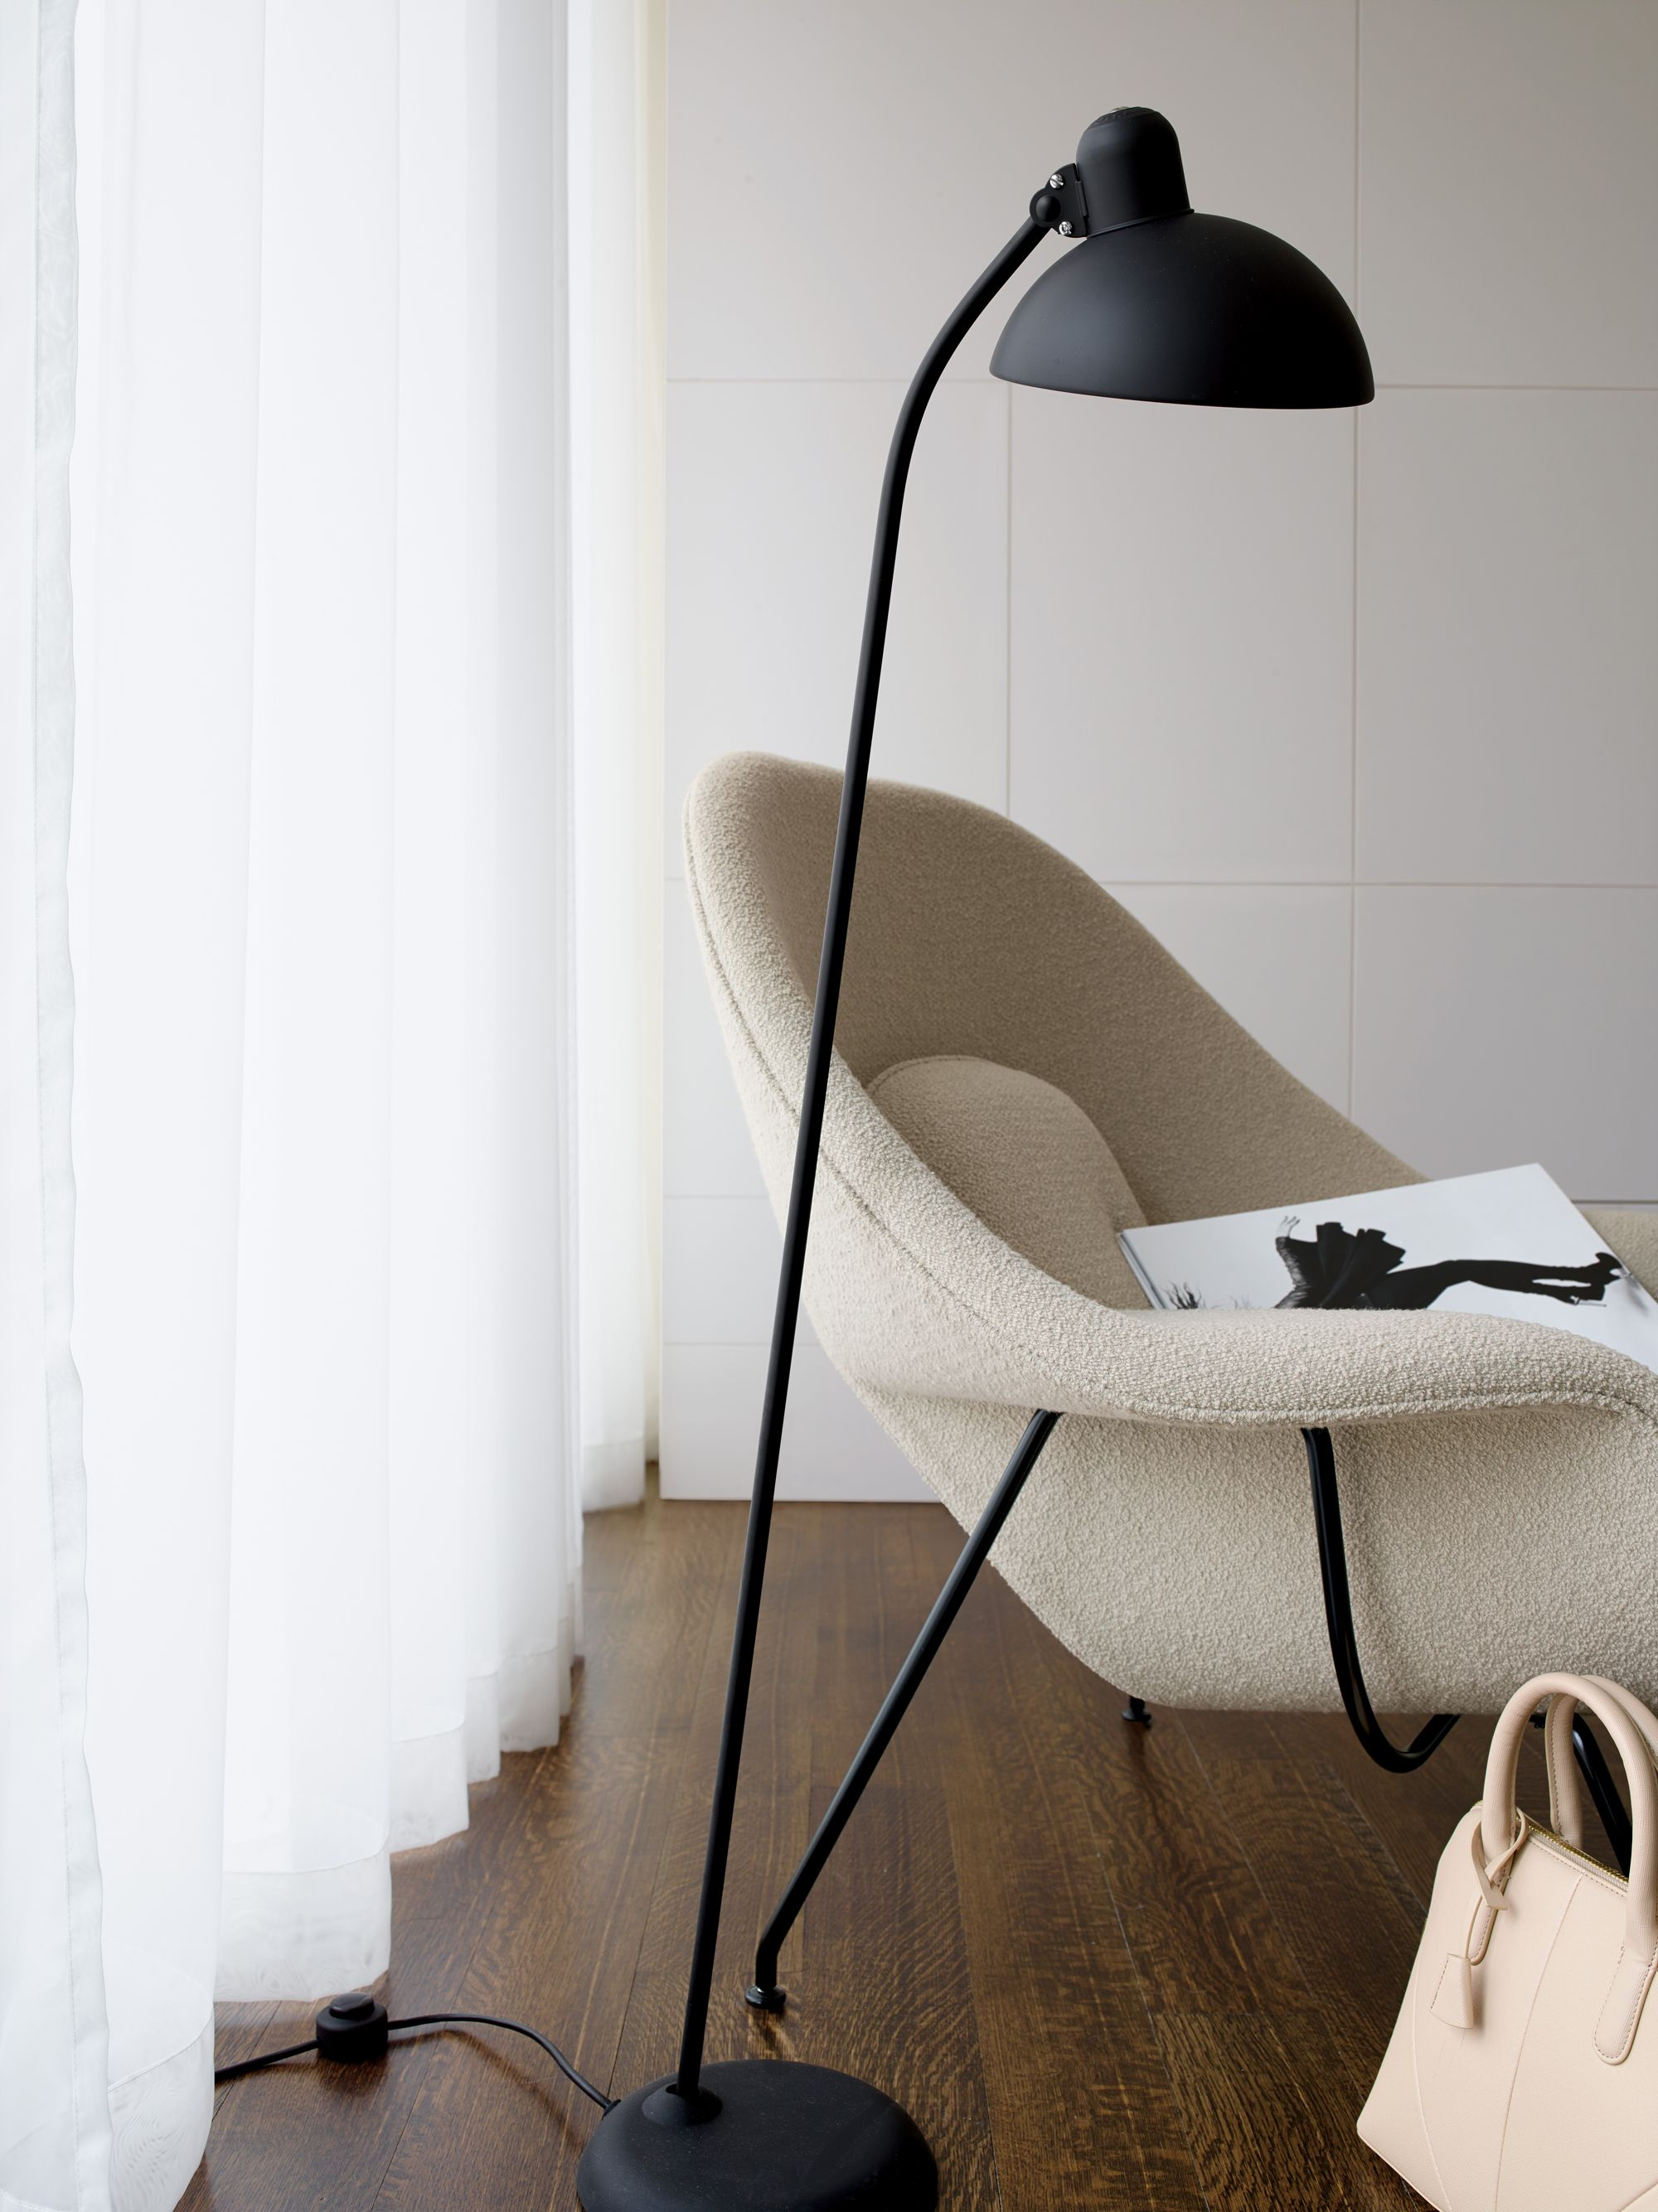 design within reach womb chair reupholster cushion kaiser idell lighting collection designed by christian